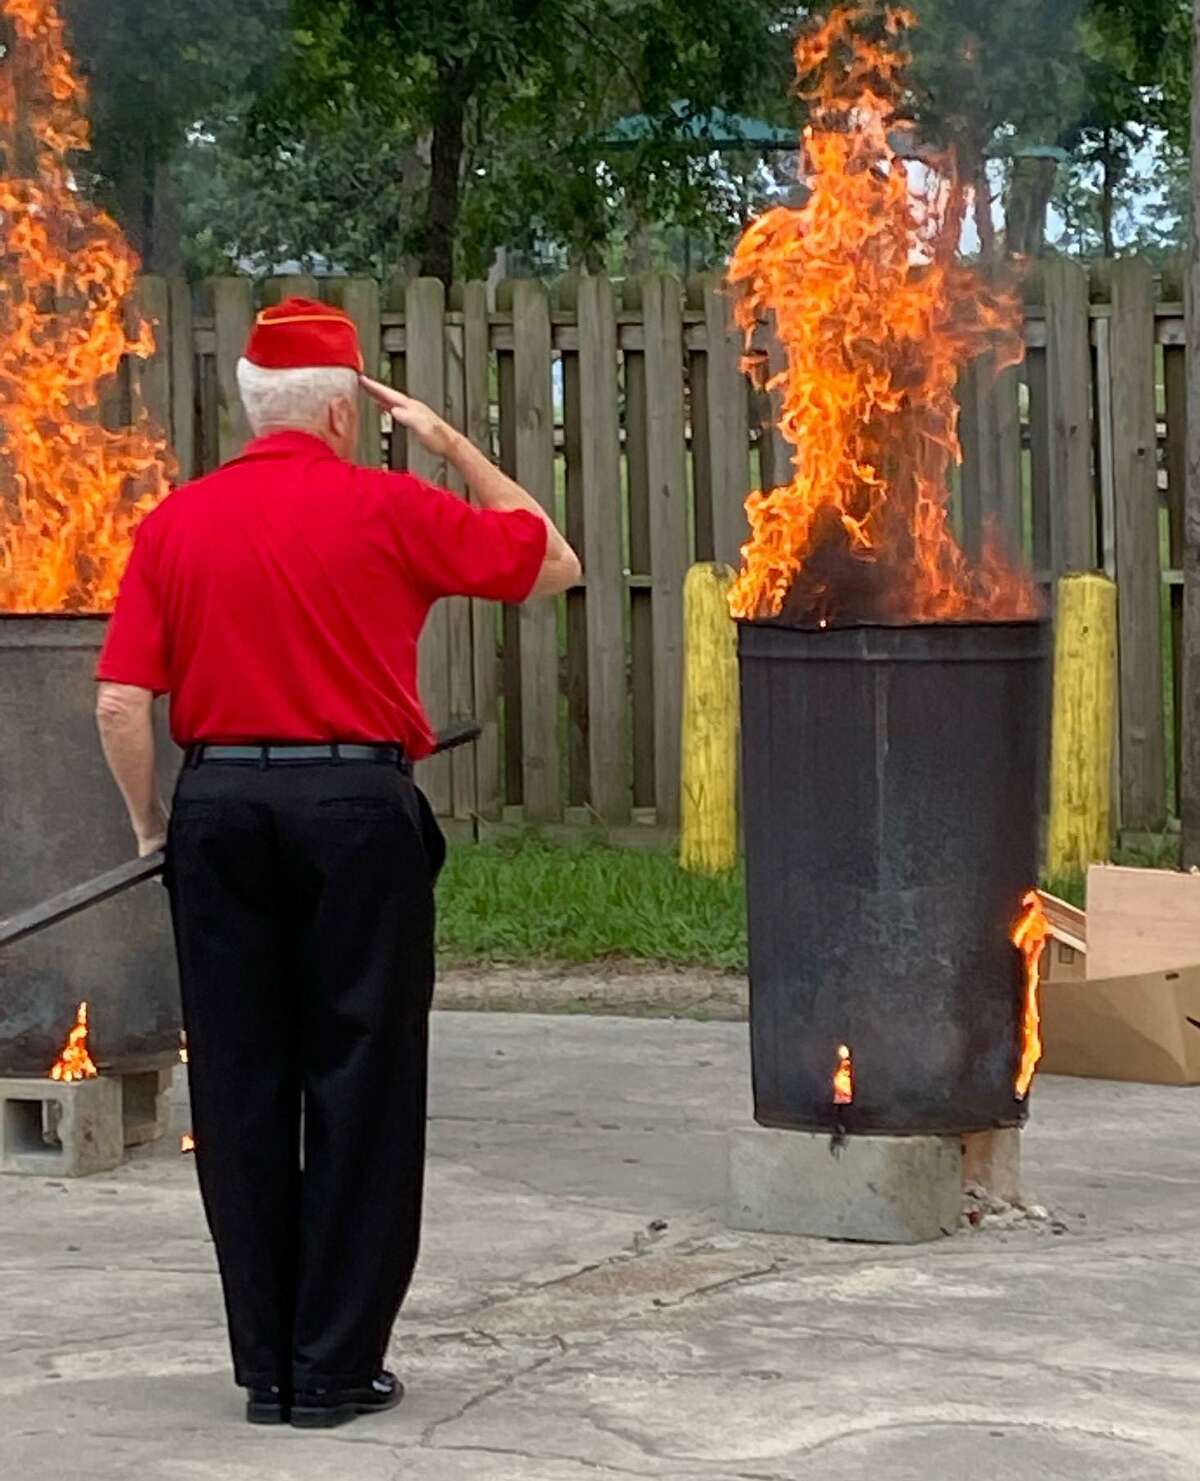 Conroe's VFW Post 4709 commemorated three historic events in American history in one moving ceremony Monday evening. The Post held a ceremony to recognize Flag Day, the anniversary of D-Day and the birthday of the U.S. Army. A member of the Marine Corps League Eastex Detachment salutes the flag he just lowered into the fire.